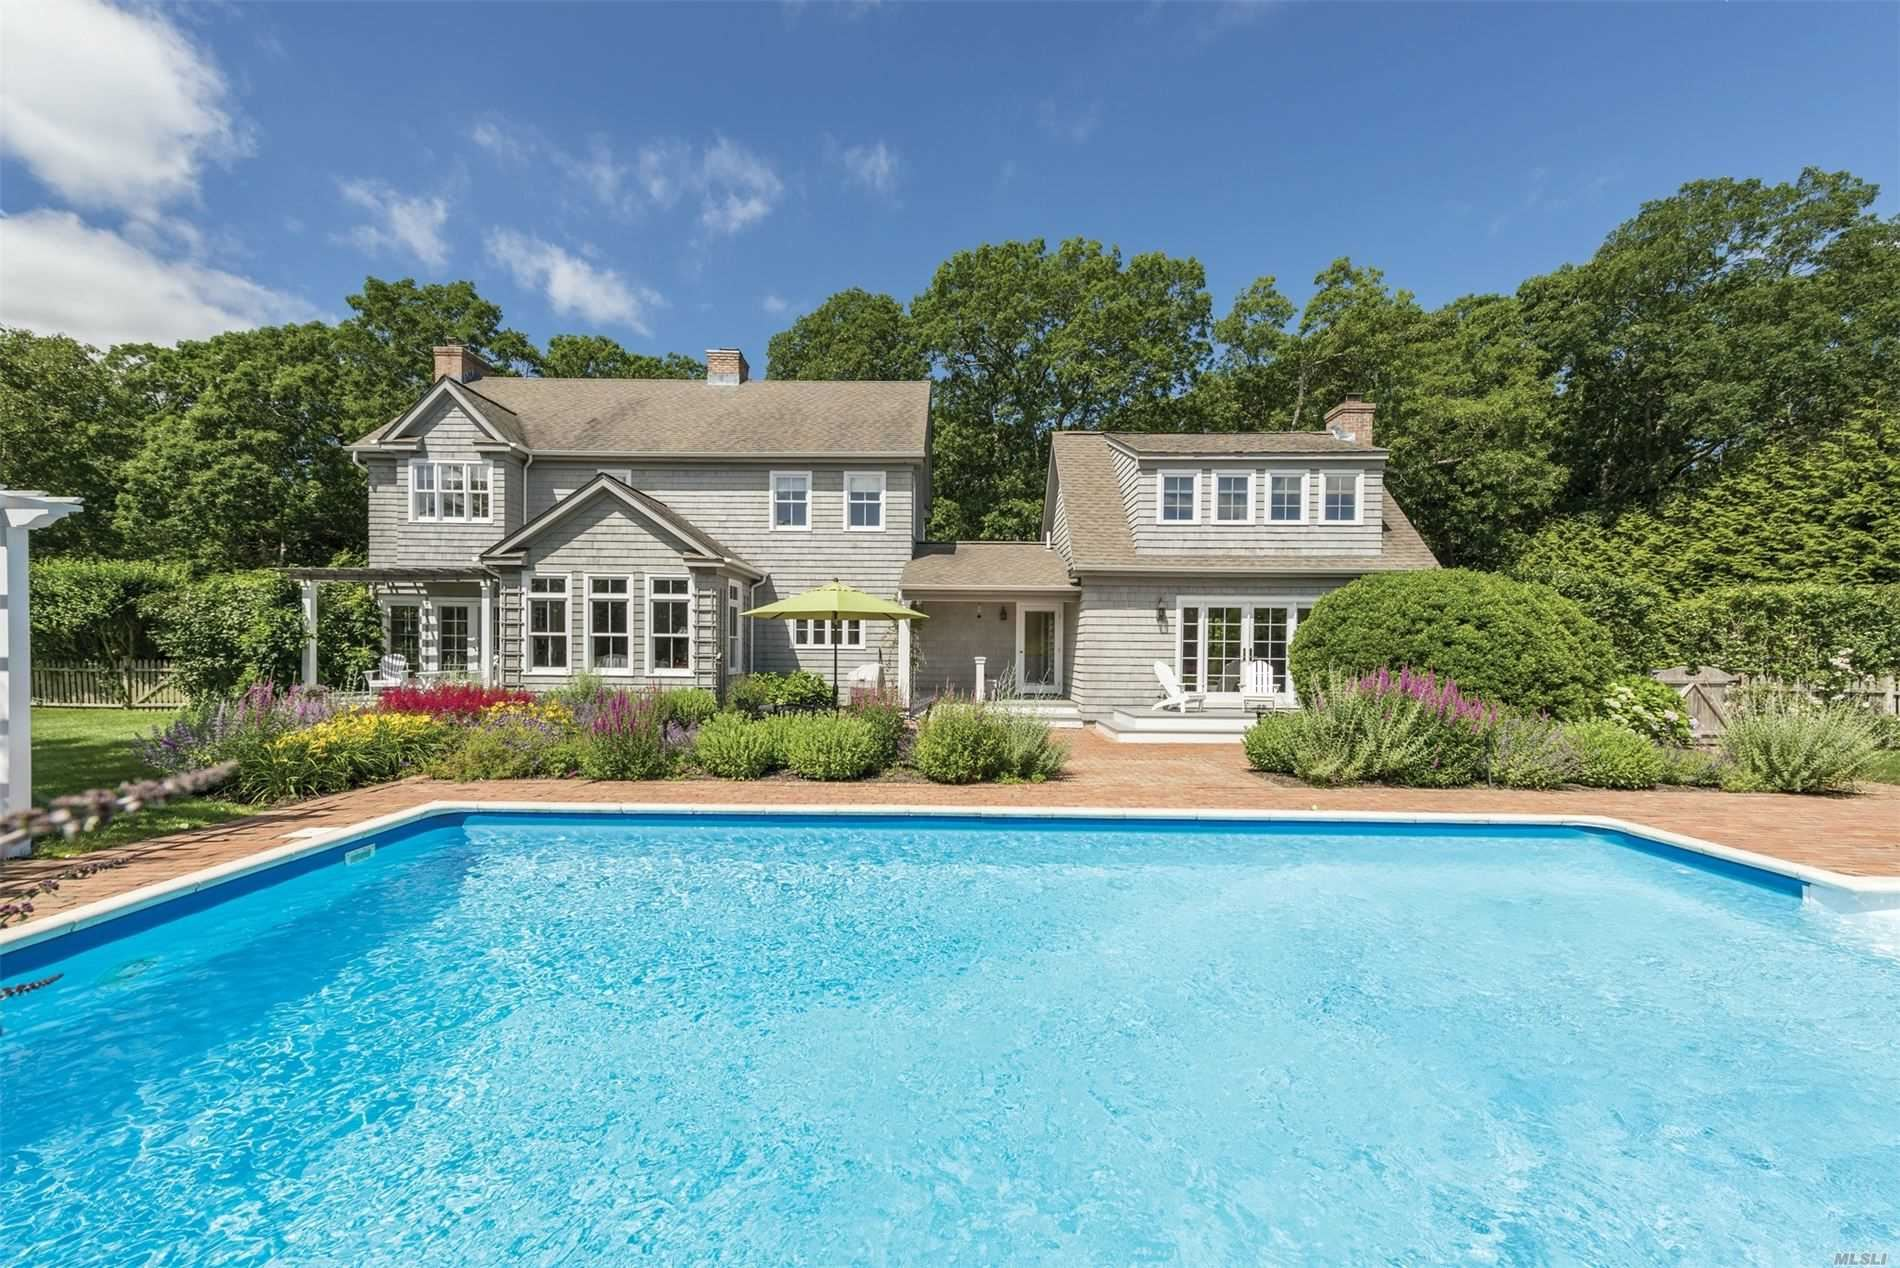 64 Water Mill Towd Road, Water Mill, NY 11976 - MLS#: 3191134